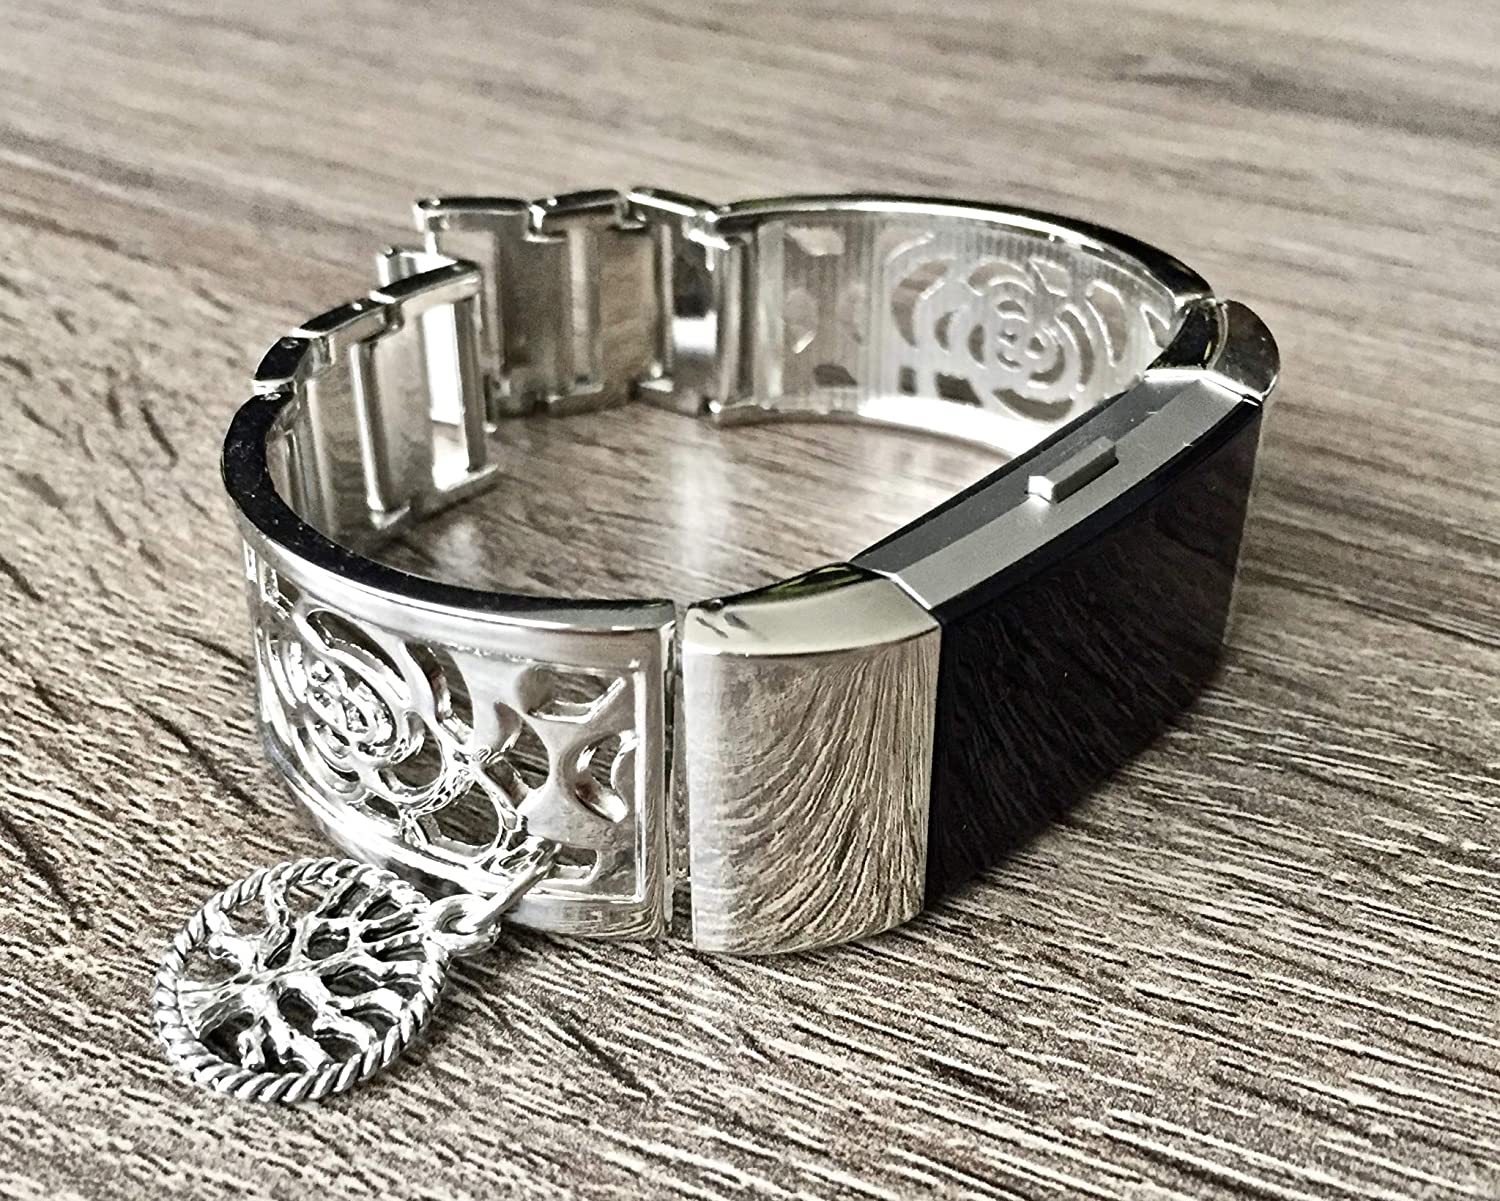 Silver Metal Band For Fitbit Charge 2 Fitness Tracker Accessory Bangle Fitbit Charge 2 Women Bracelet With Silver Vintage Tree Of Life Spiritual Charm Adjustable Size Floral Design Fitbit Jewelry